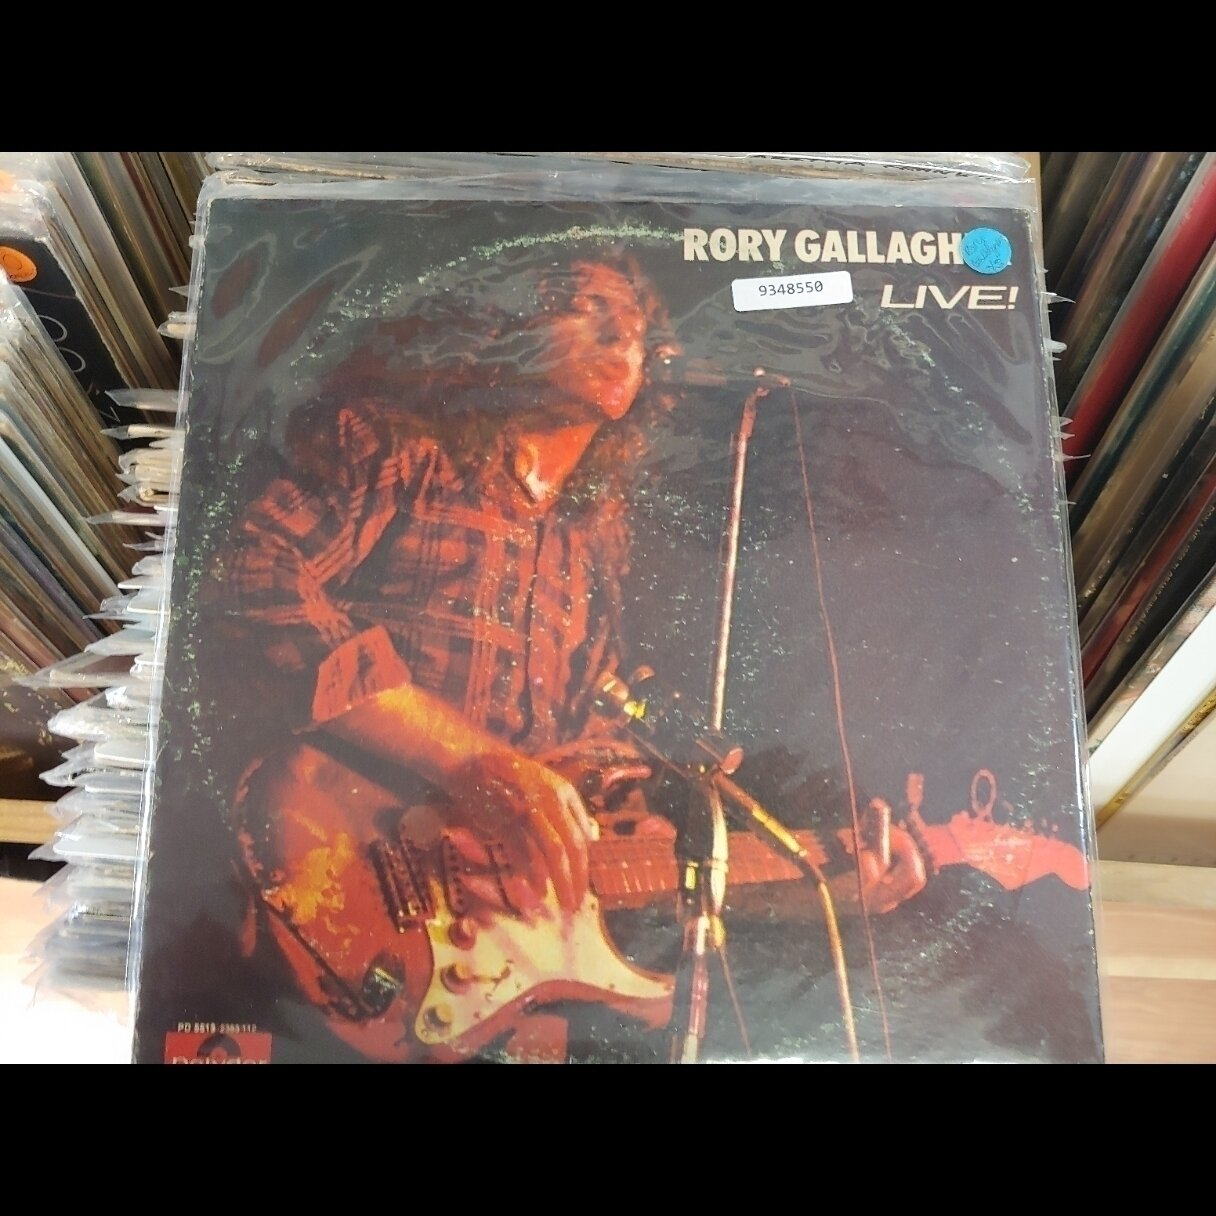 GALLAGHER, RORY-LIVE